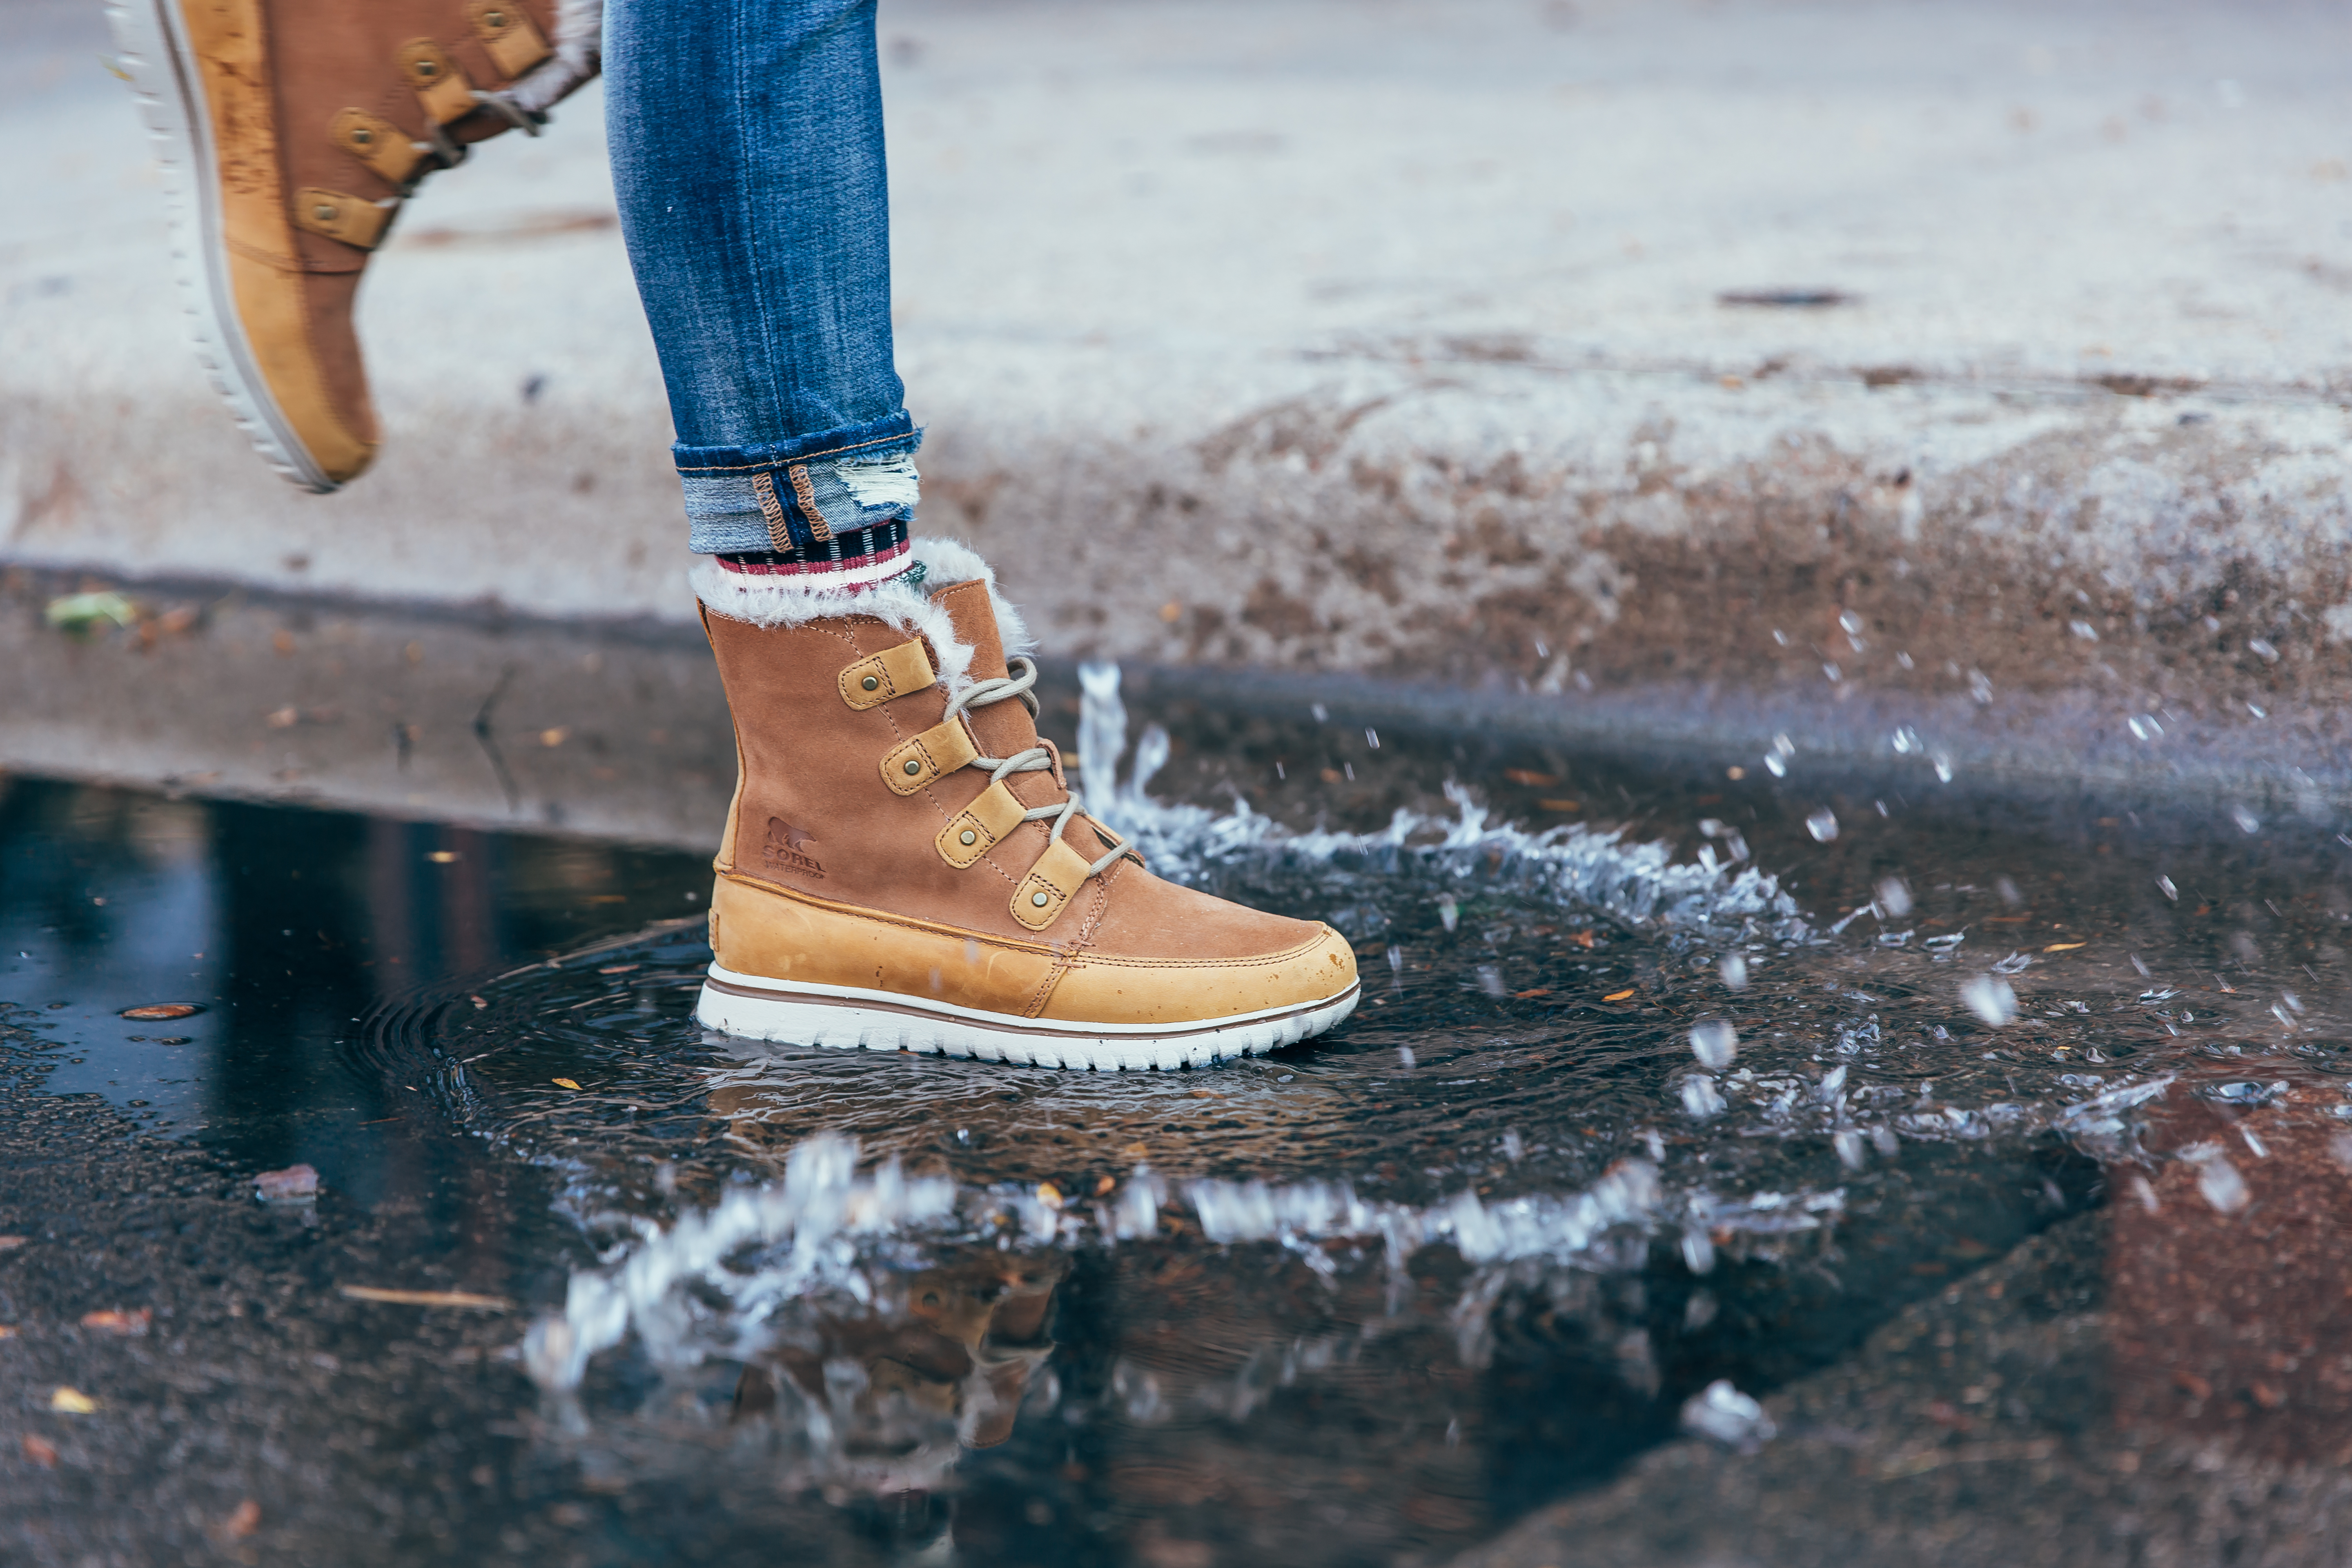 Stance Socks with Sorel Winter Boots | How To Style Socks With Shoes